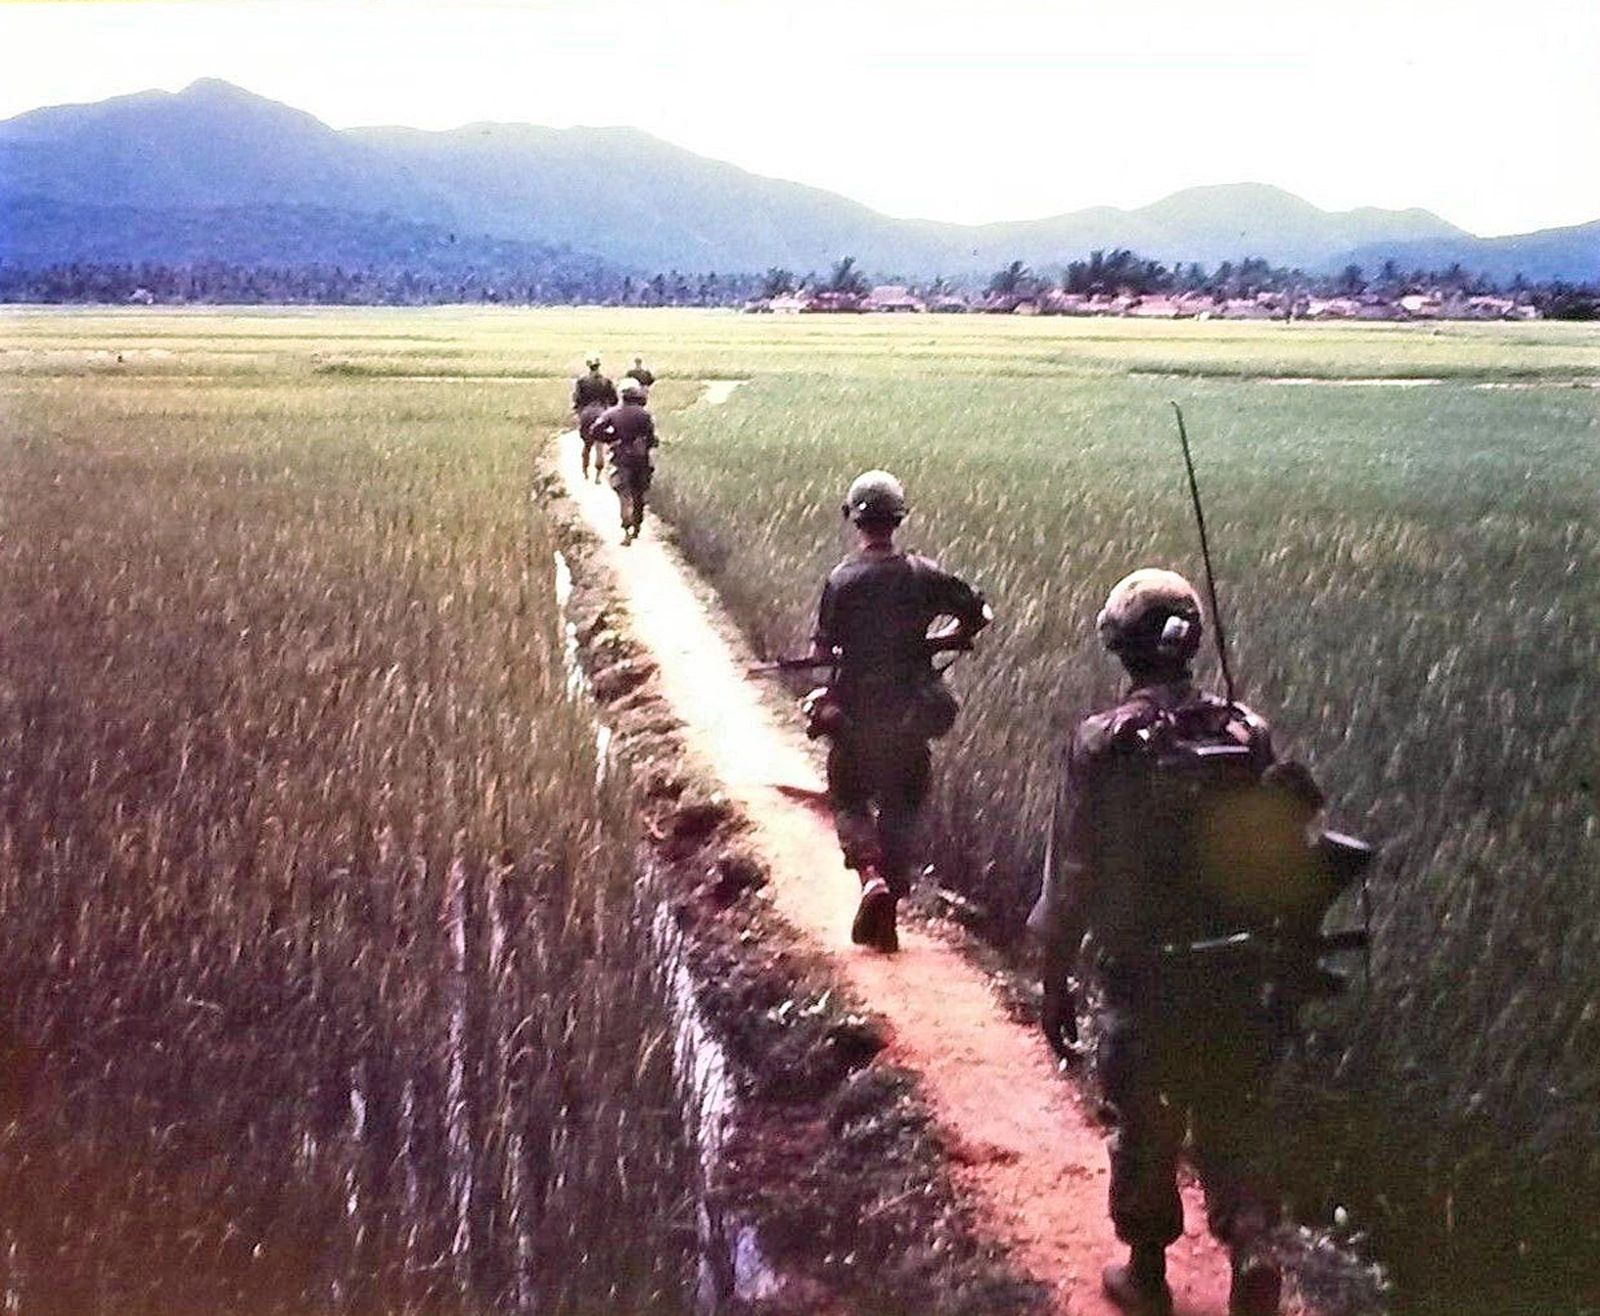 flic kr p sfwg vietnam war era photo namspot flic kr p sf19wg vietnam war era photo